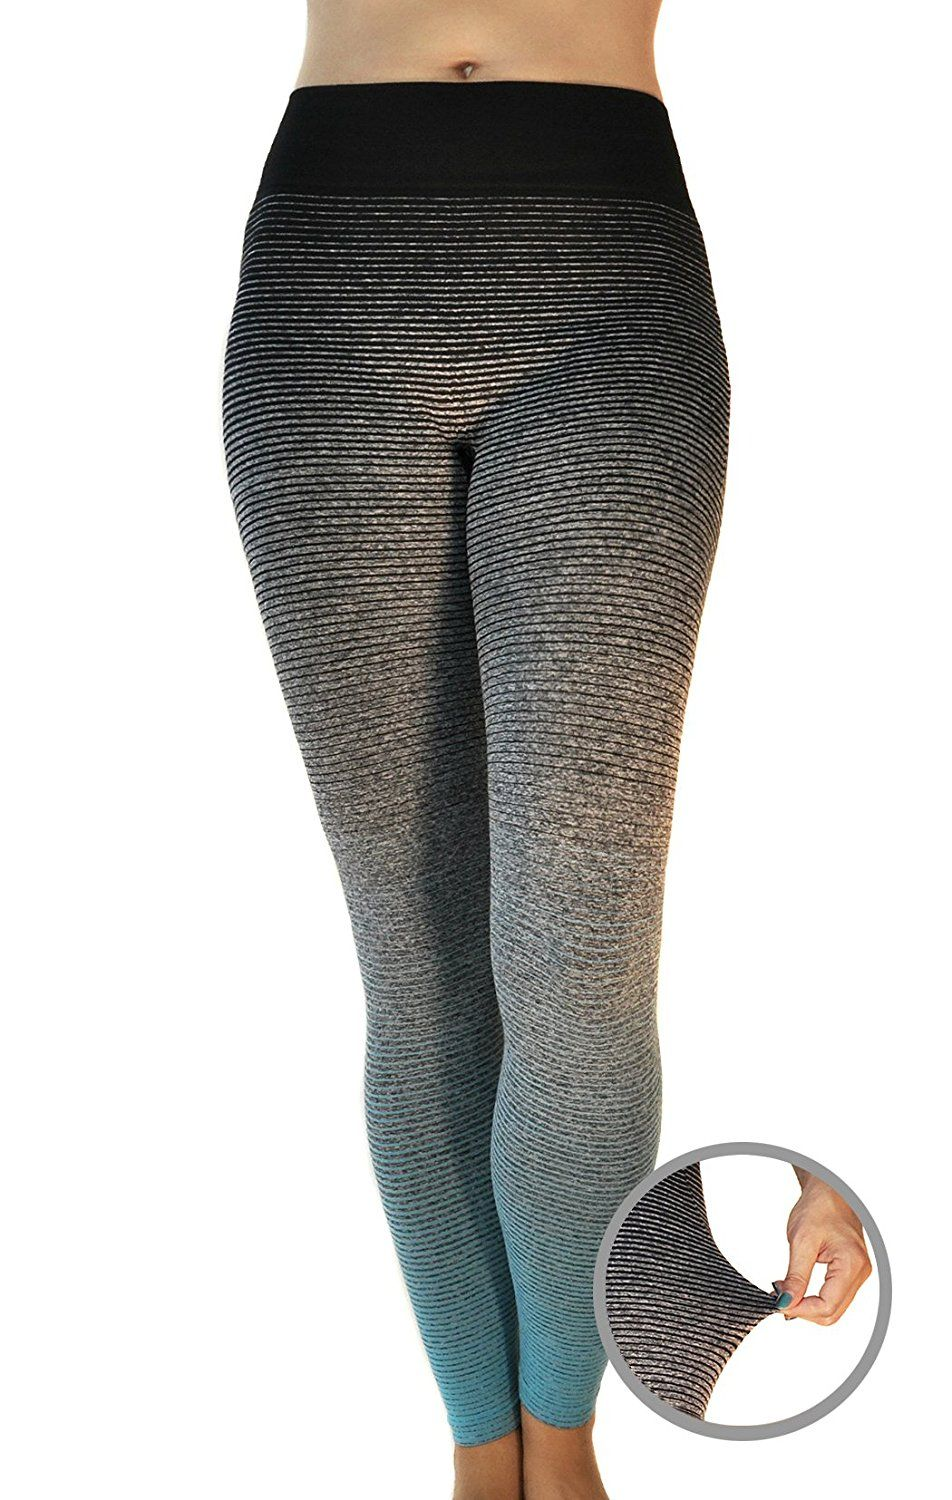 8990625702251 Dry Fit Yoga Pants - Stretchy Fold Over Waistband - Slimming Workout  Leggings Price: $16.99